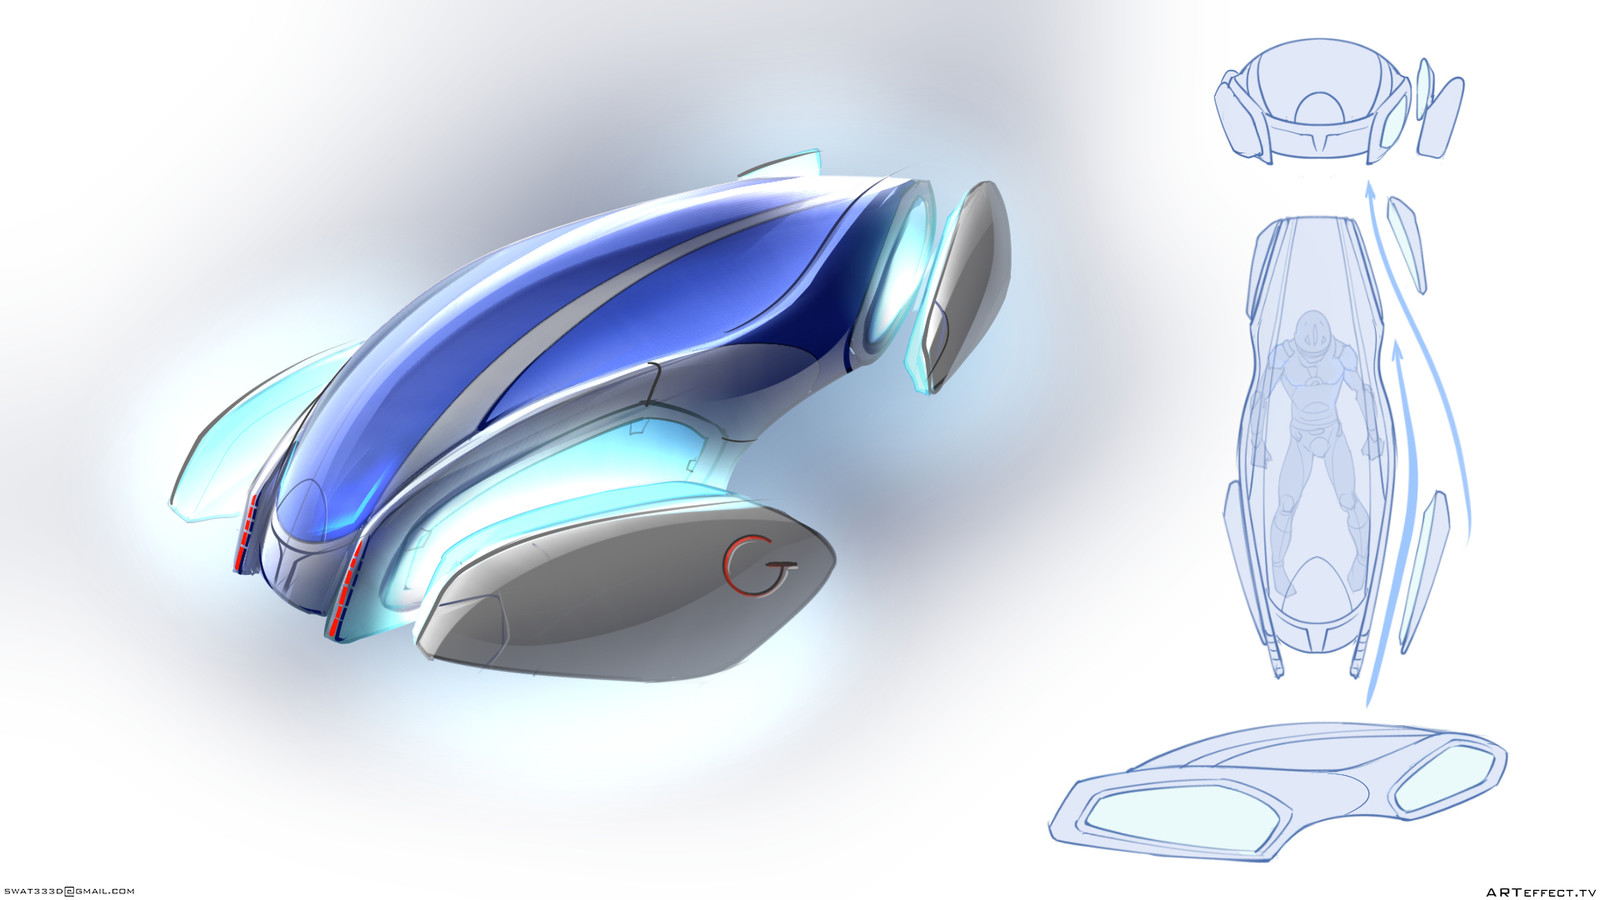 Concept Flay personal transport